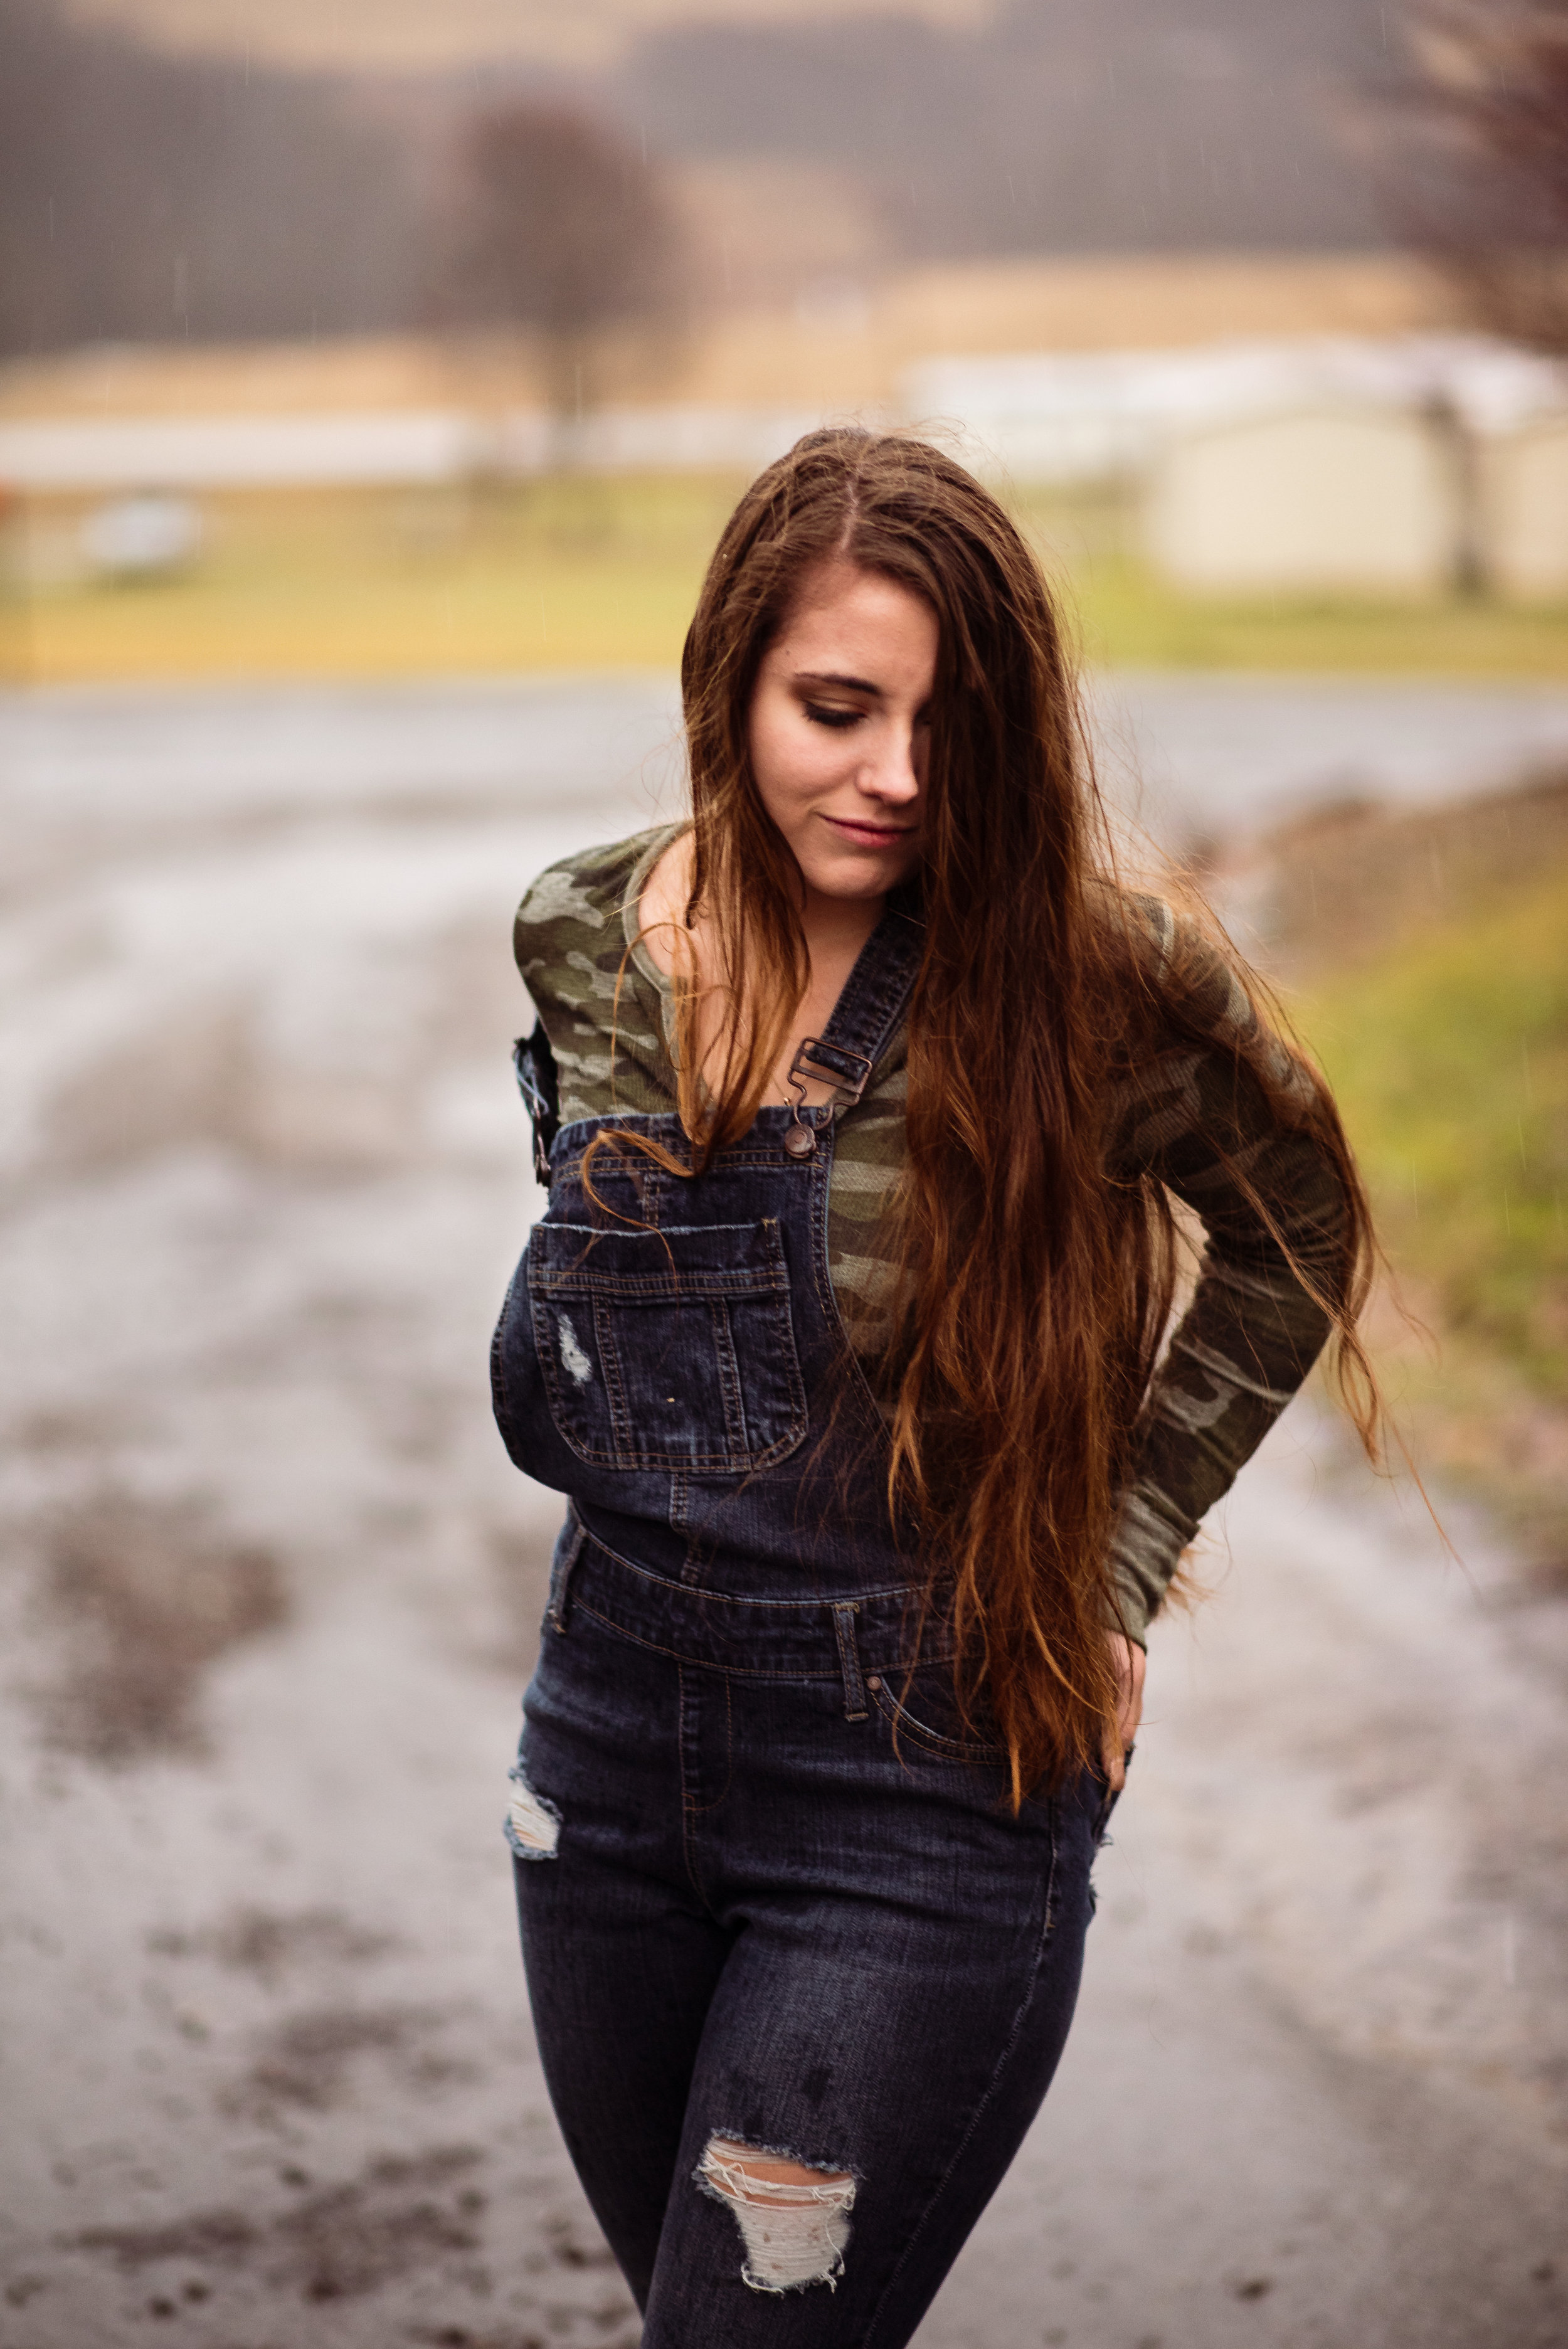 Long-haired girl in the rain.